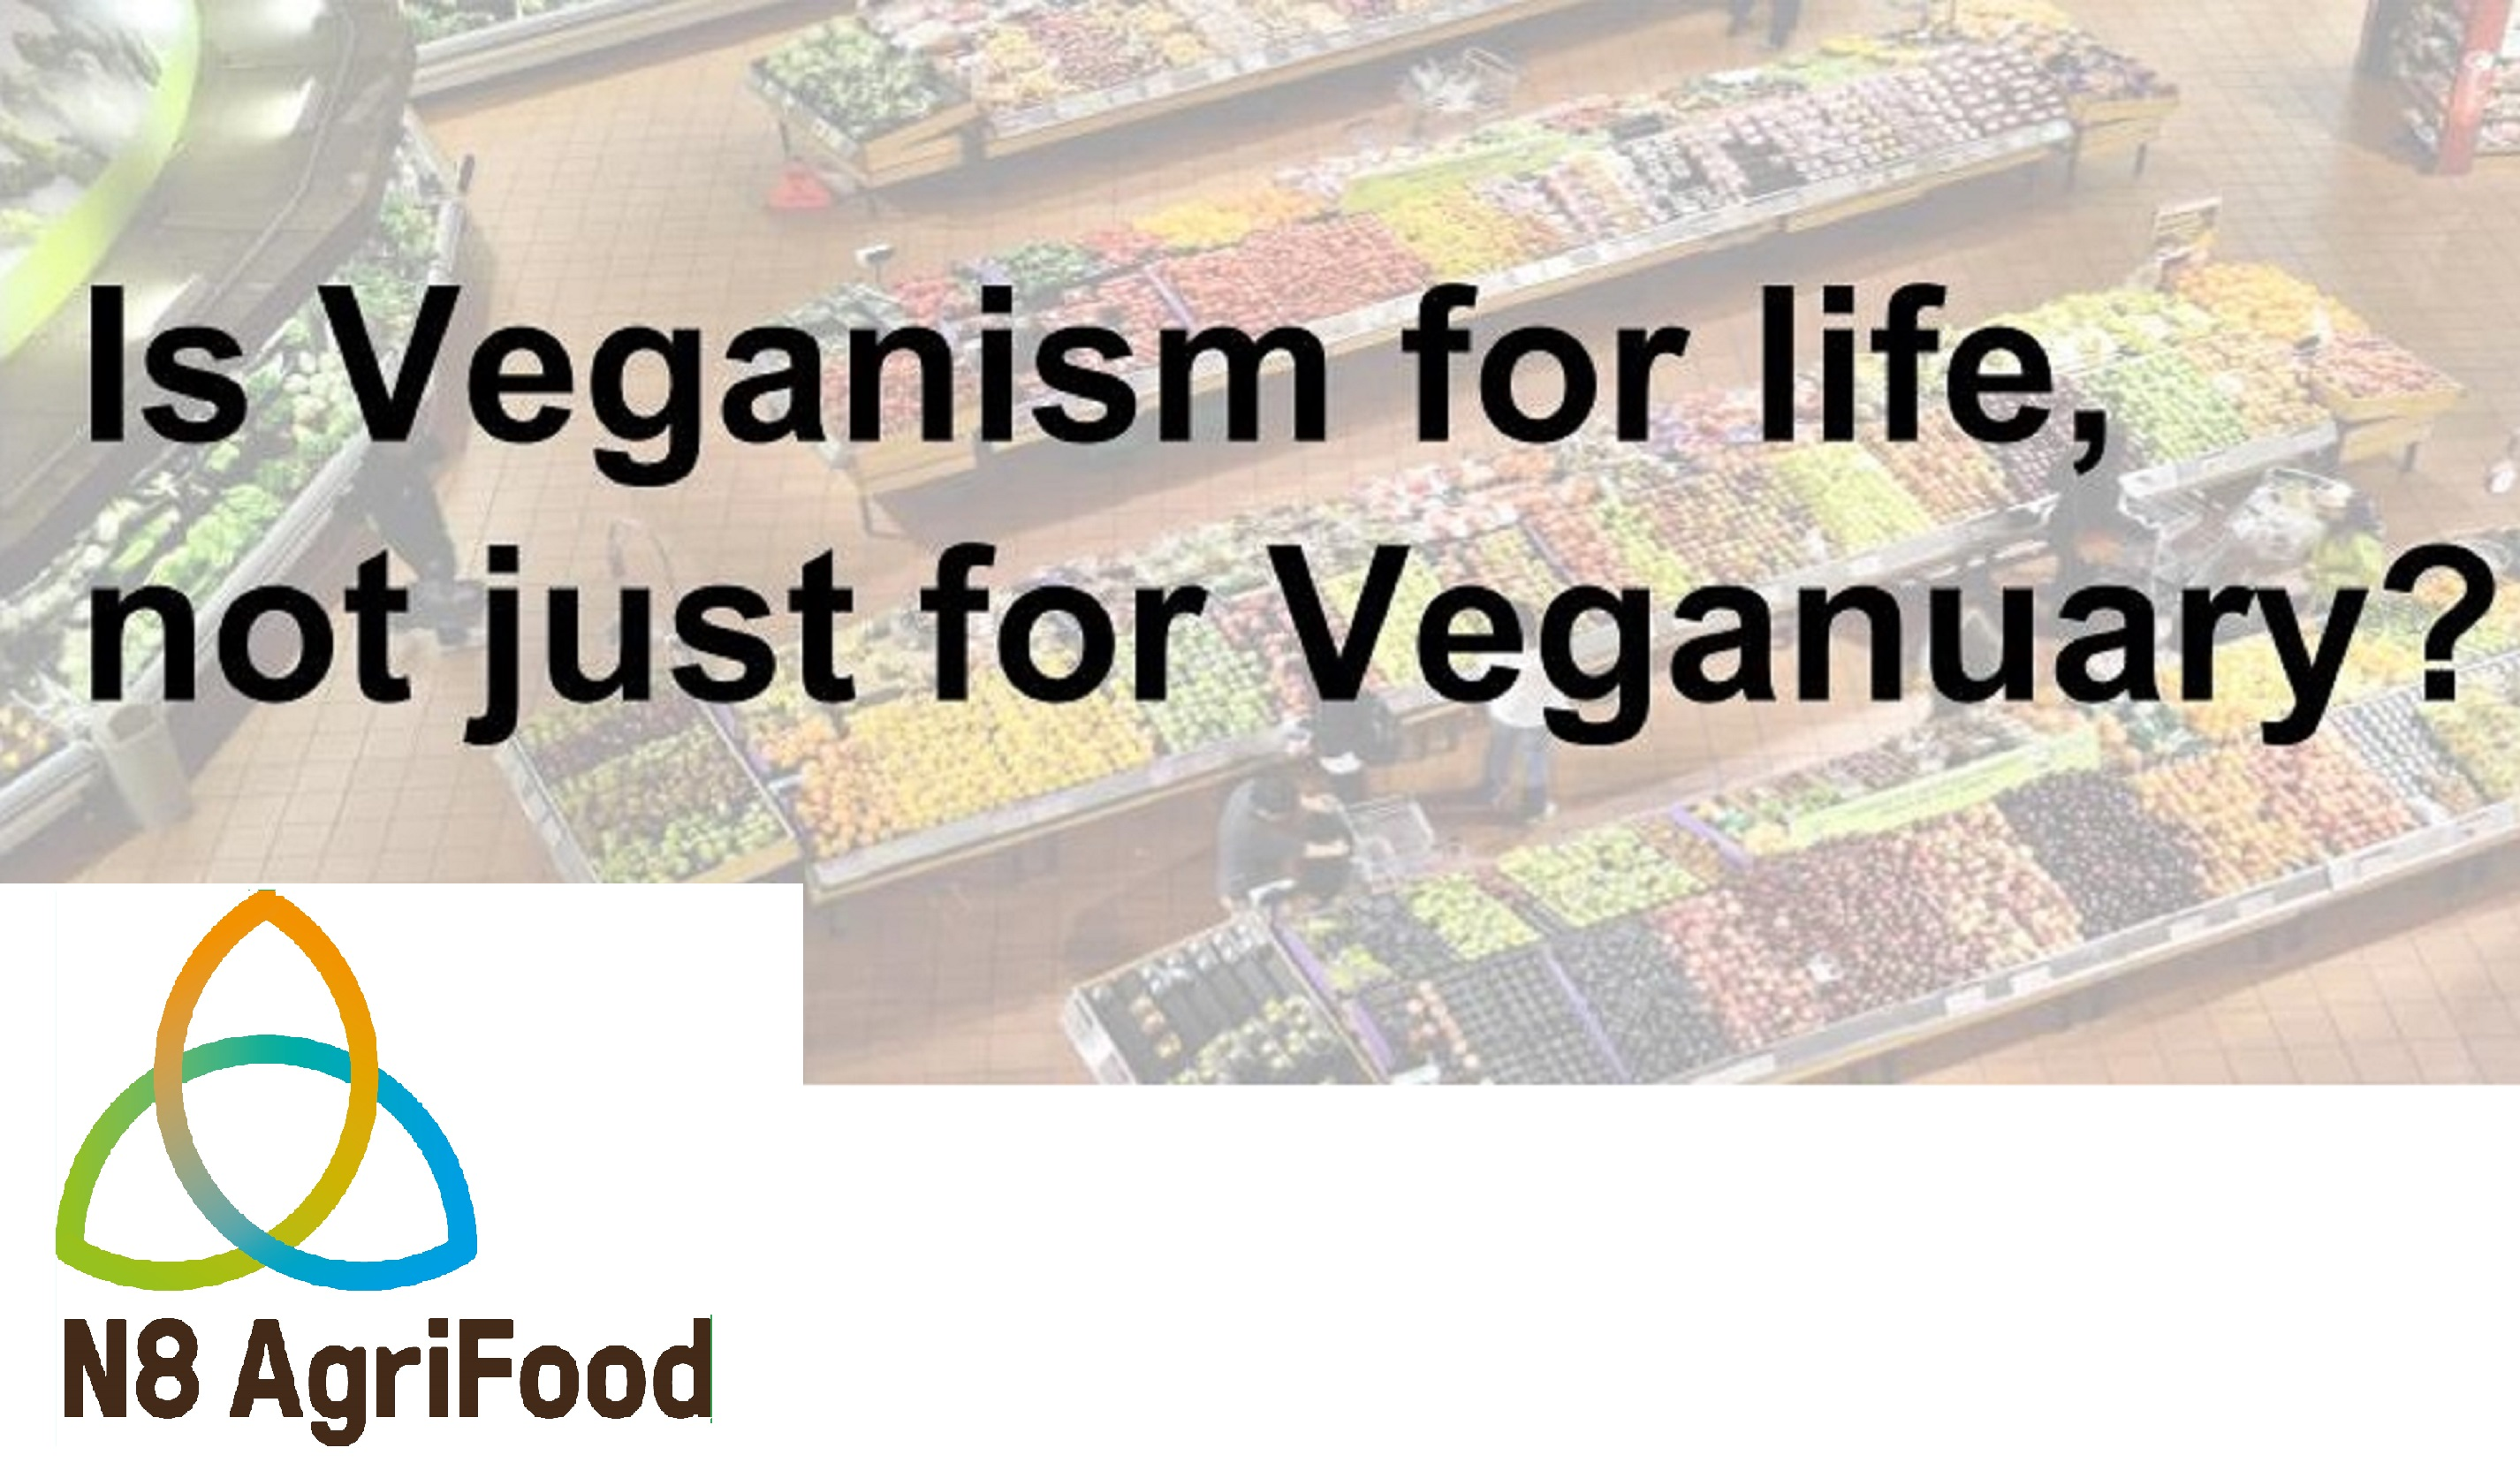 Is Veganism for Life, not just for Veganuary?